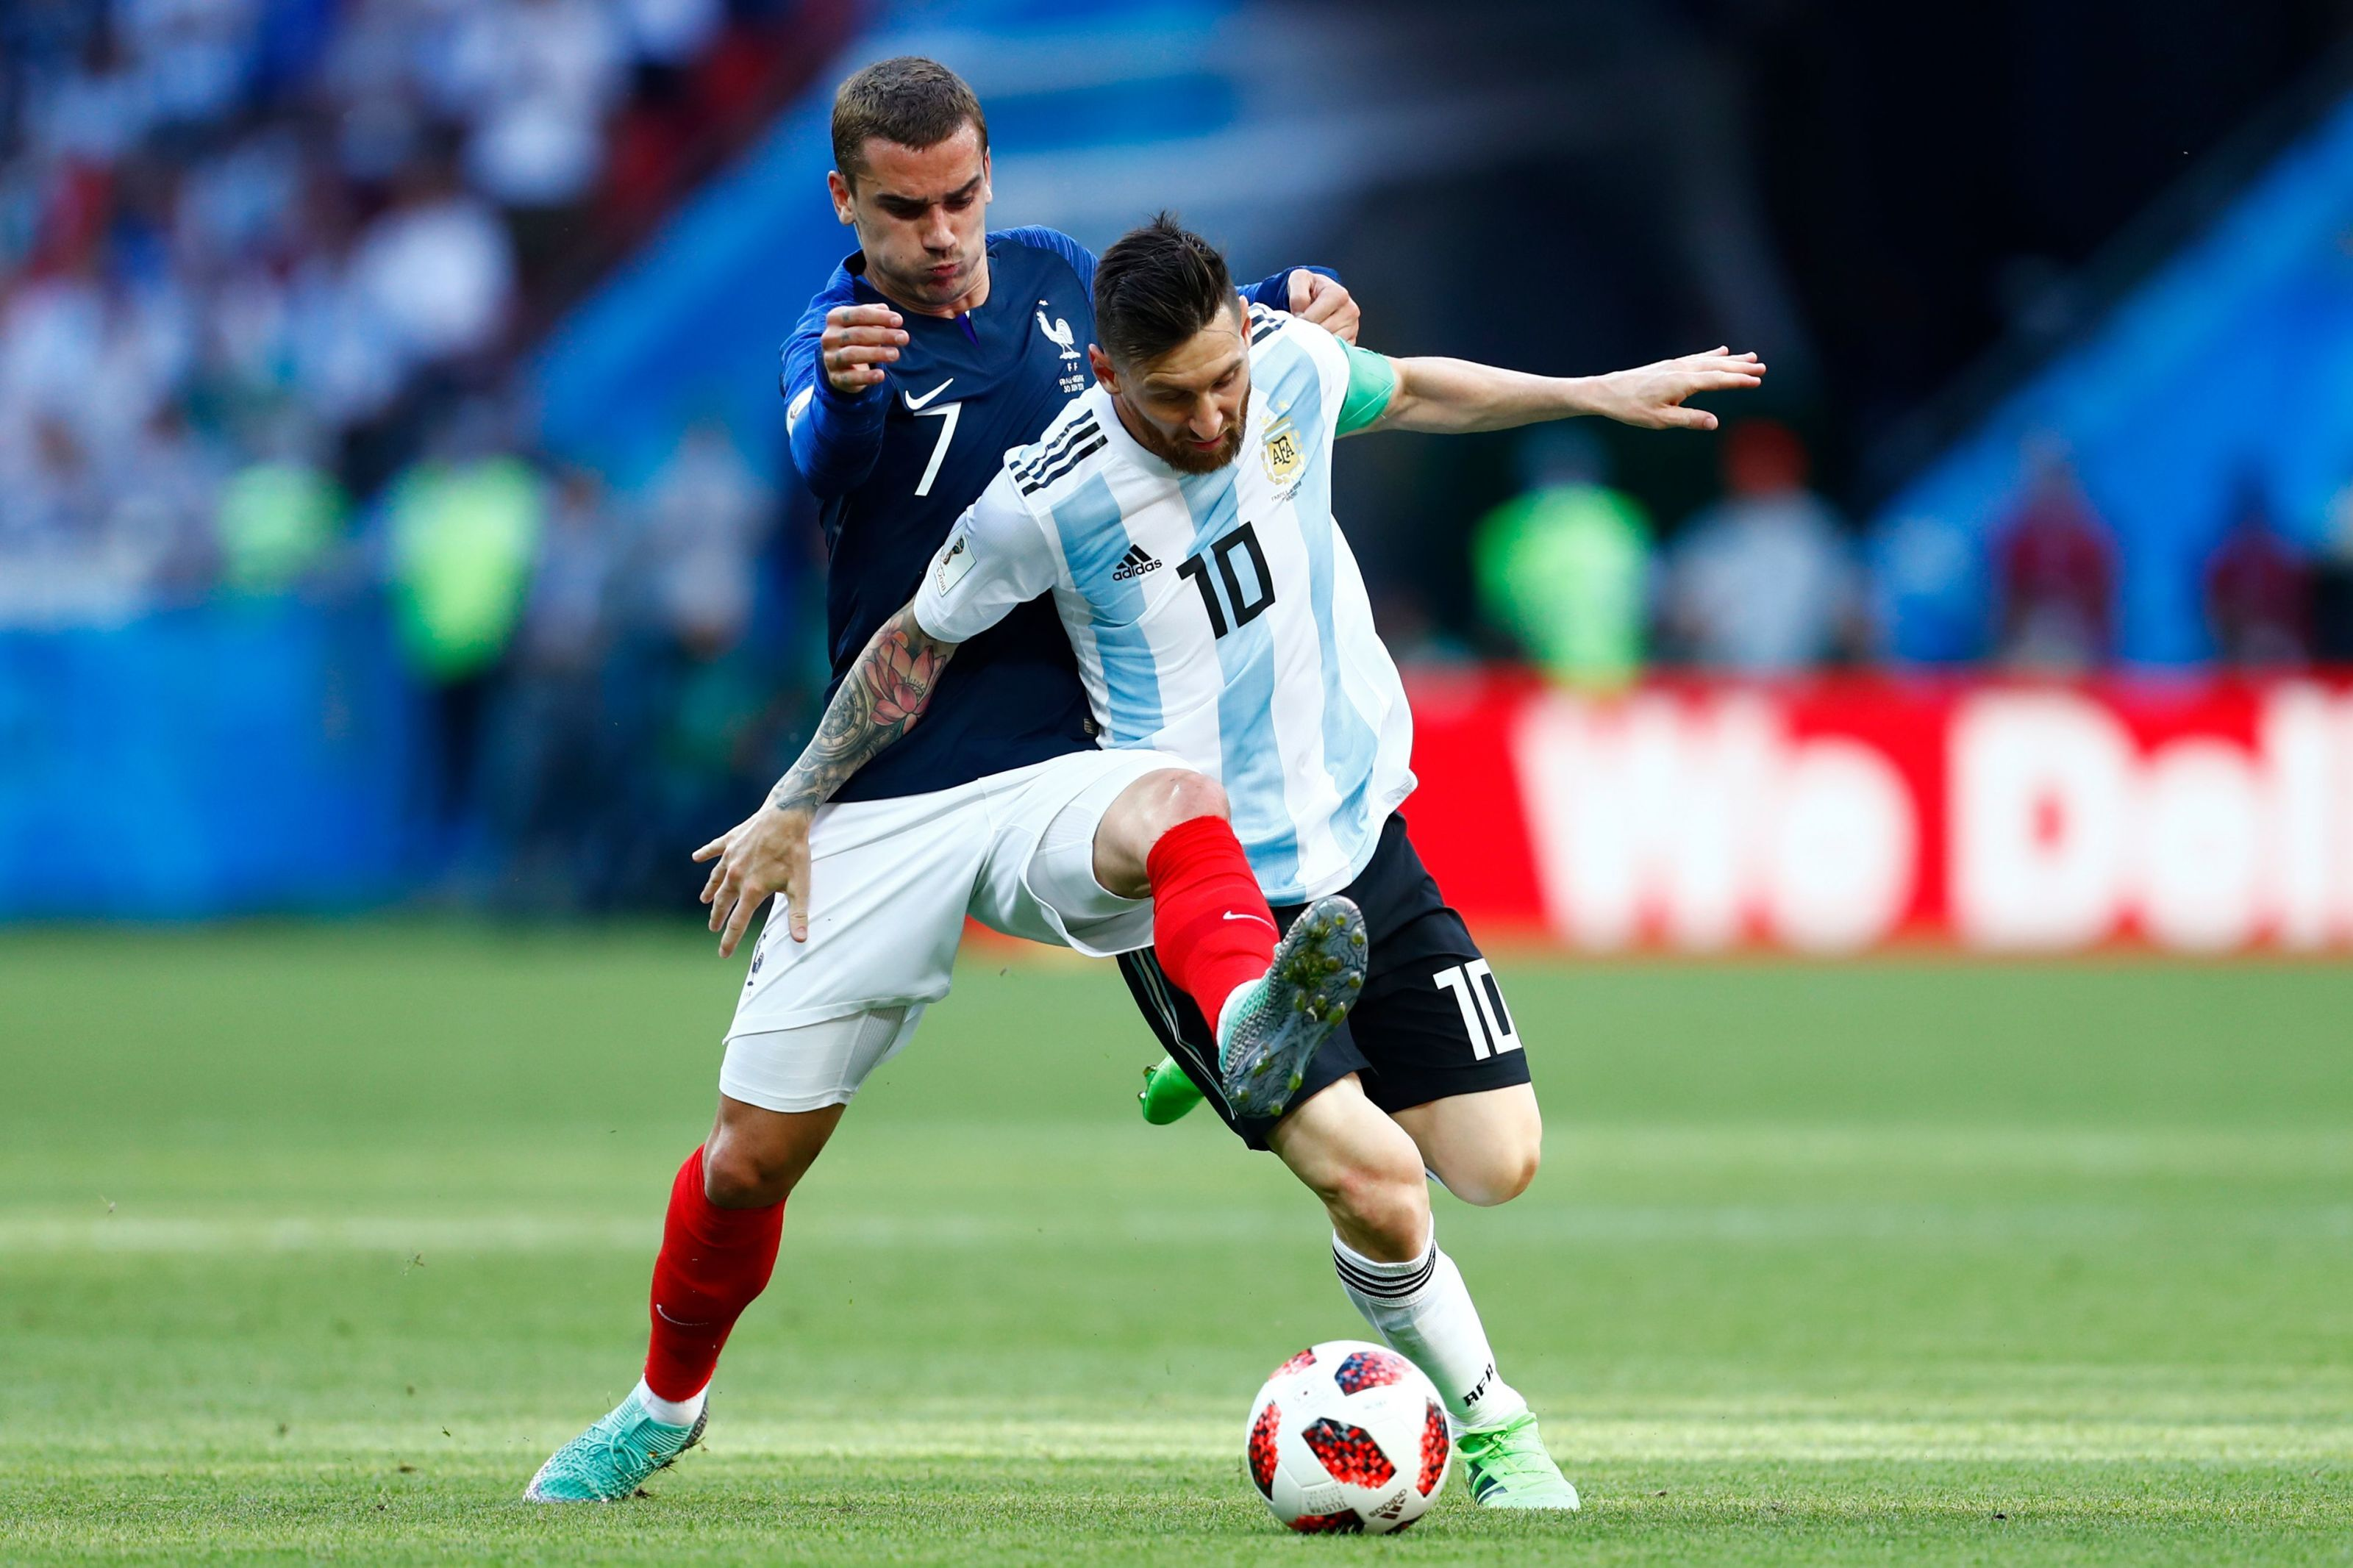 Lionel Messi wants Manchester City star at Barcelona over Antoine Griezmann